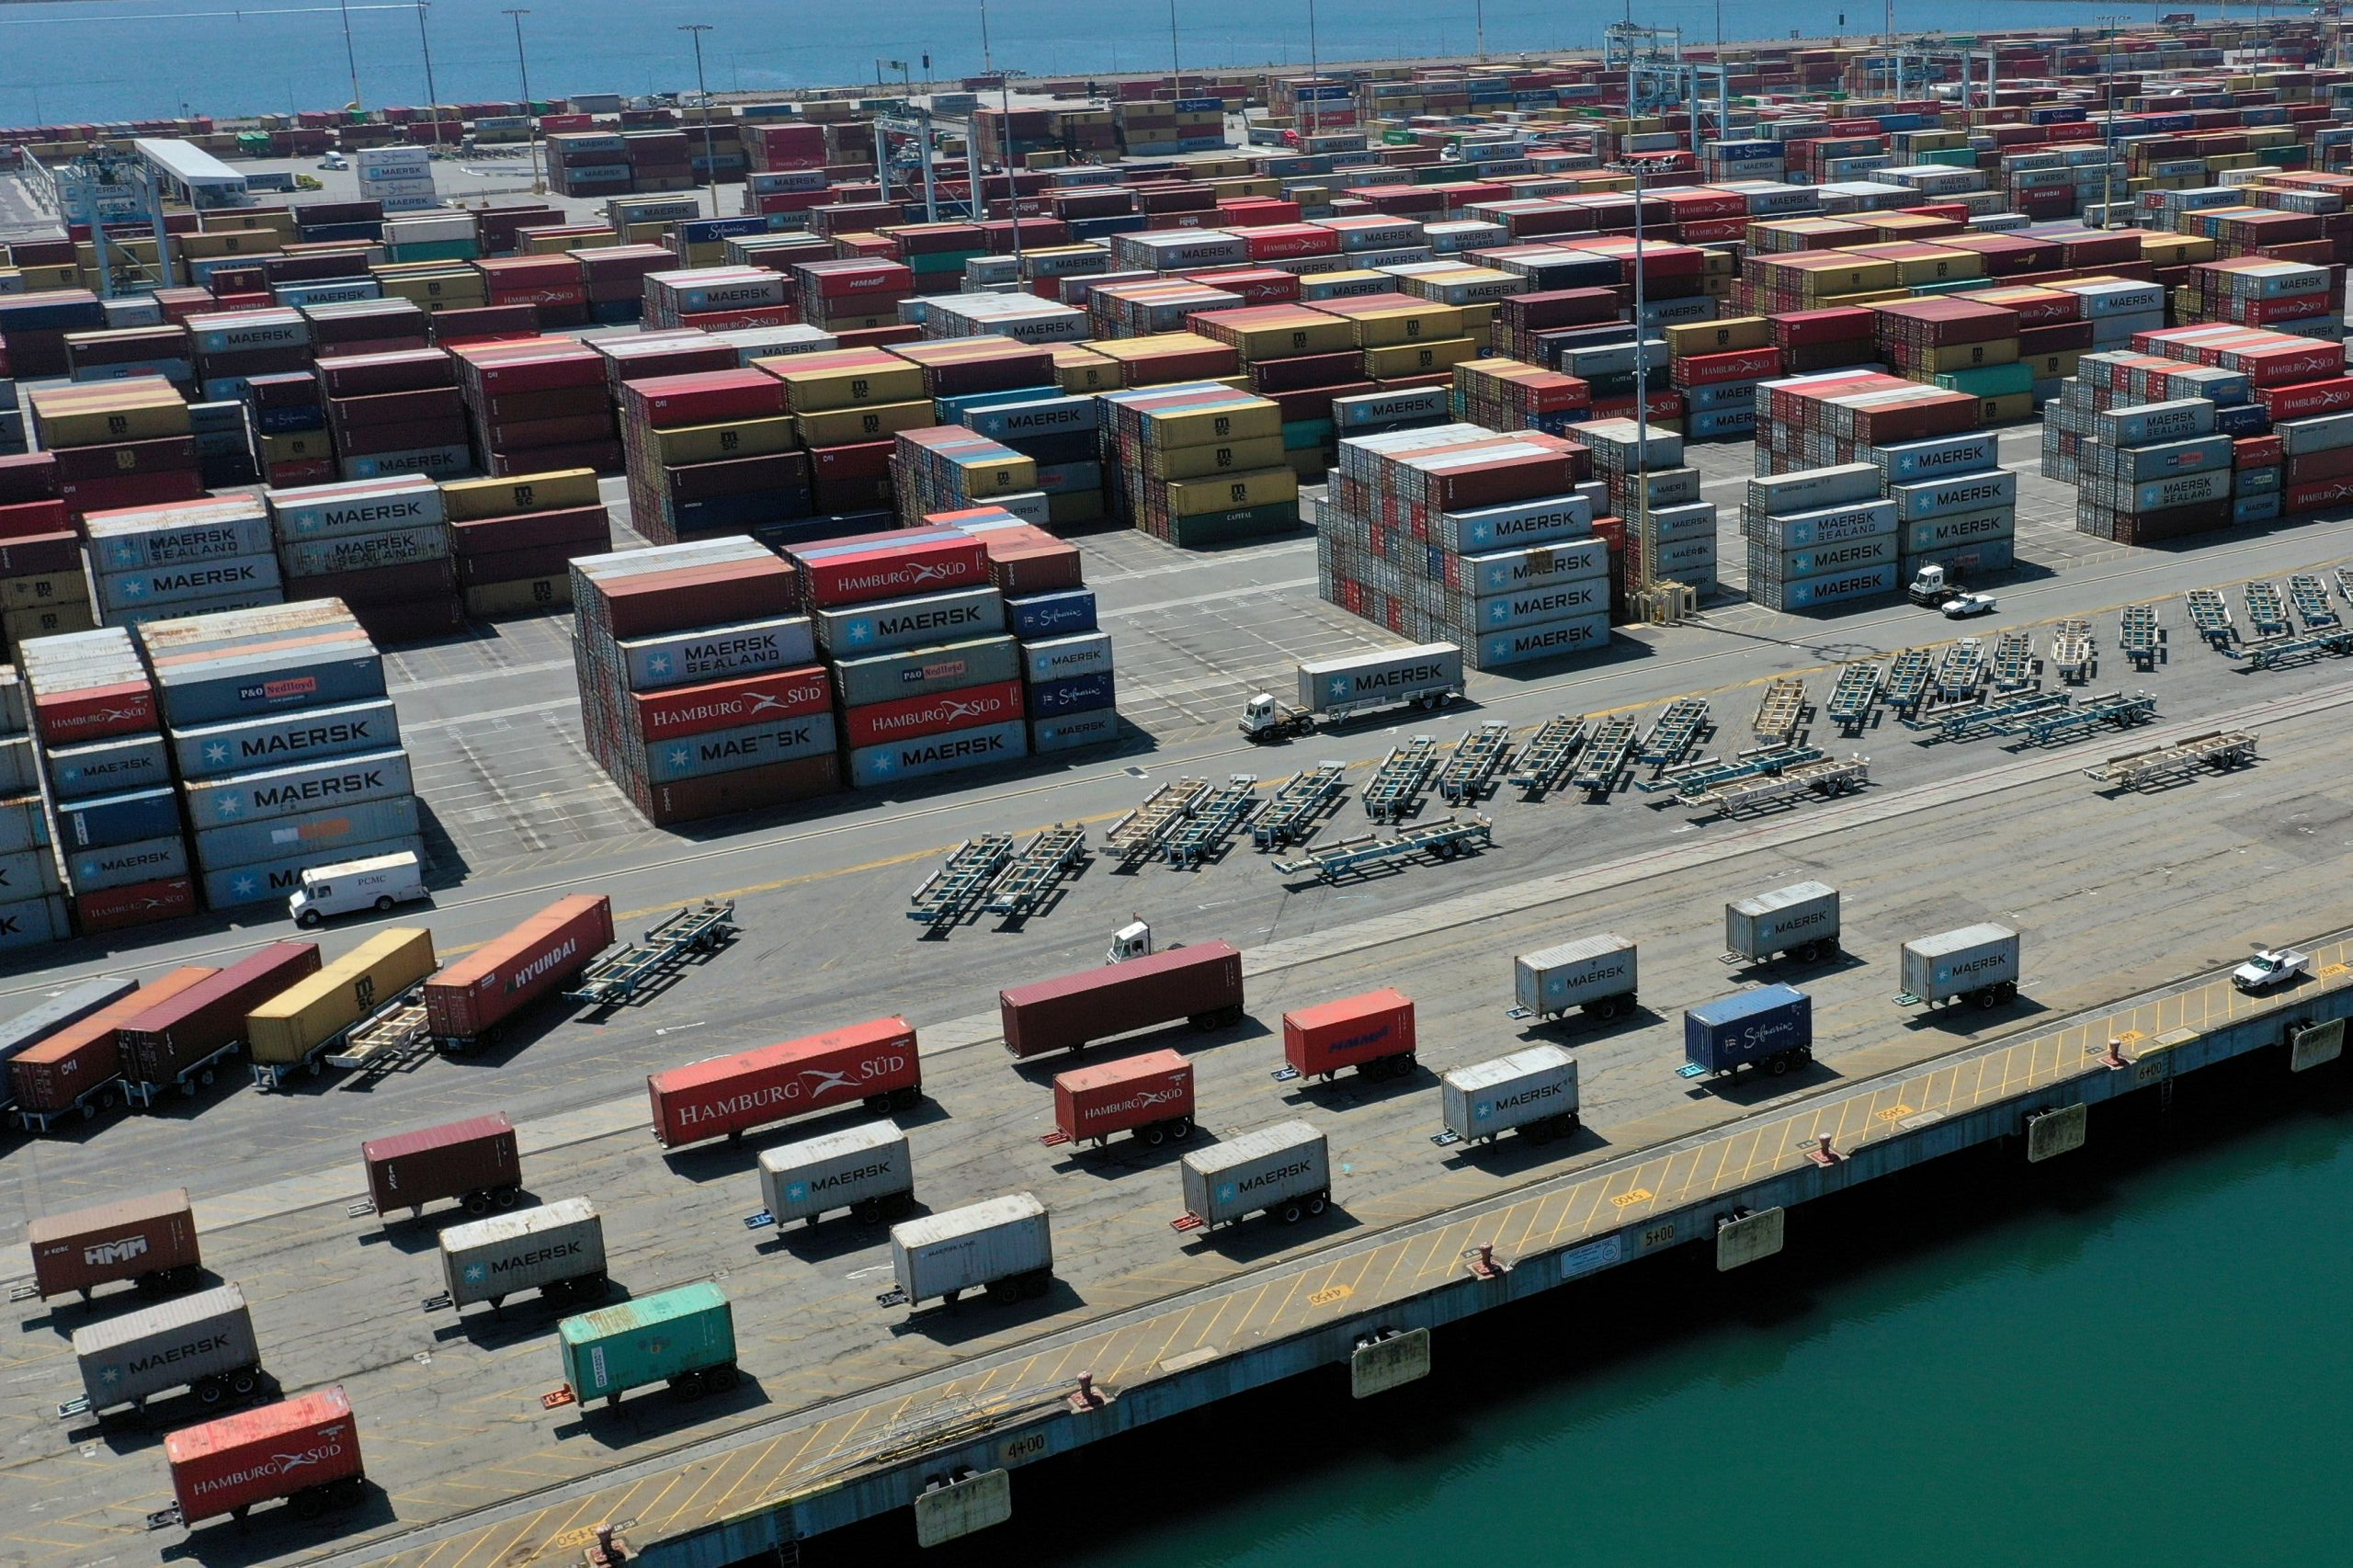 Retailers pay more to fly everything from bikes to hot tubs from China as U.S. port backup delays deliveries